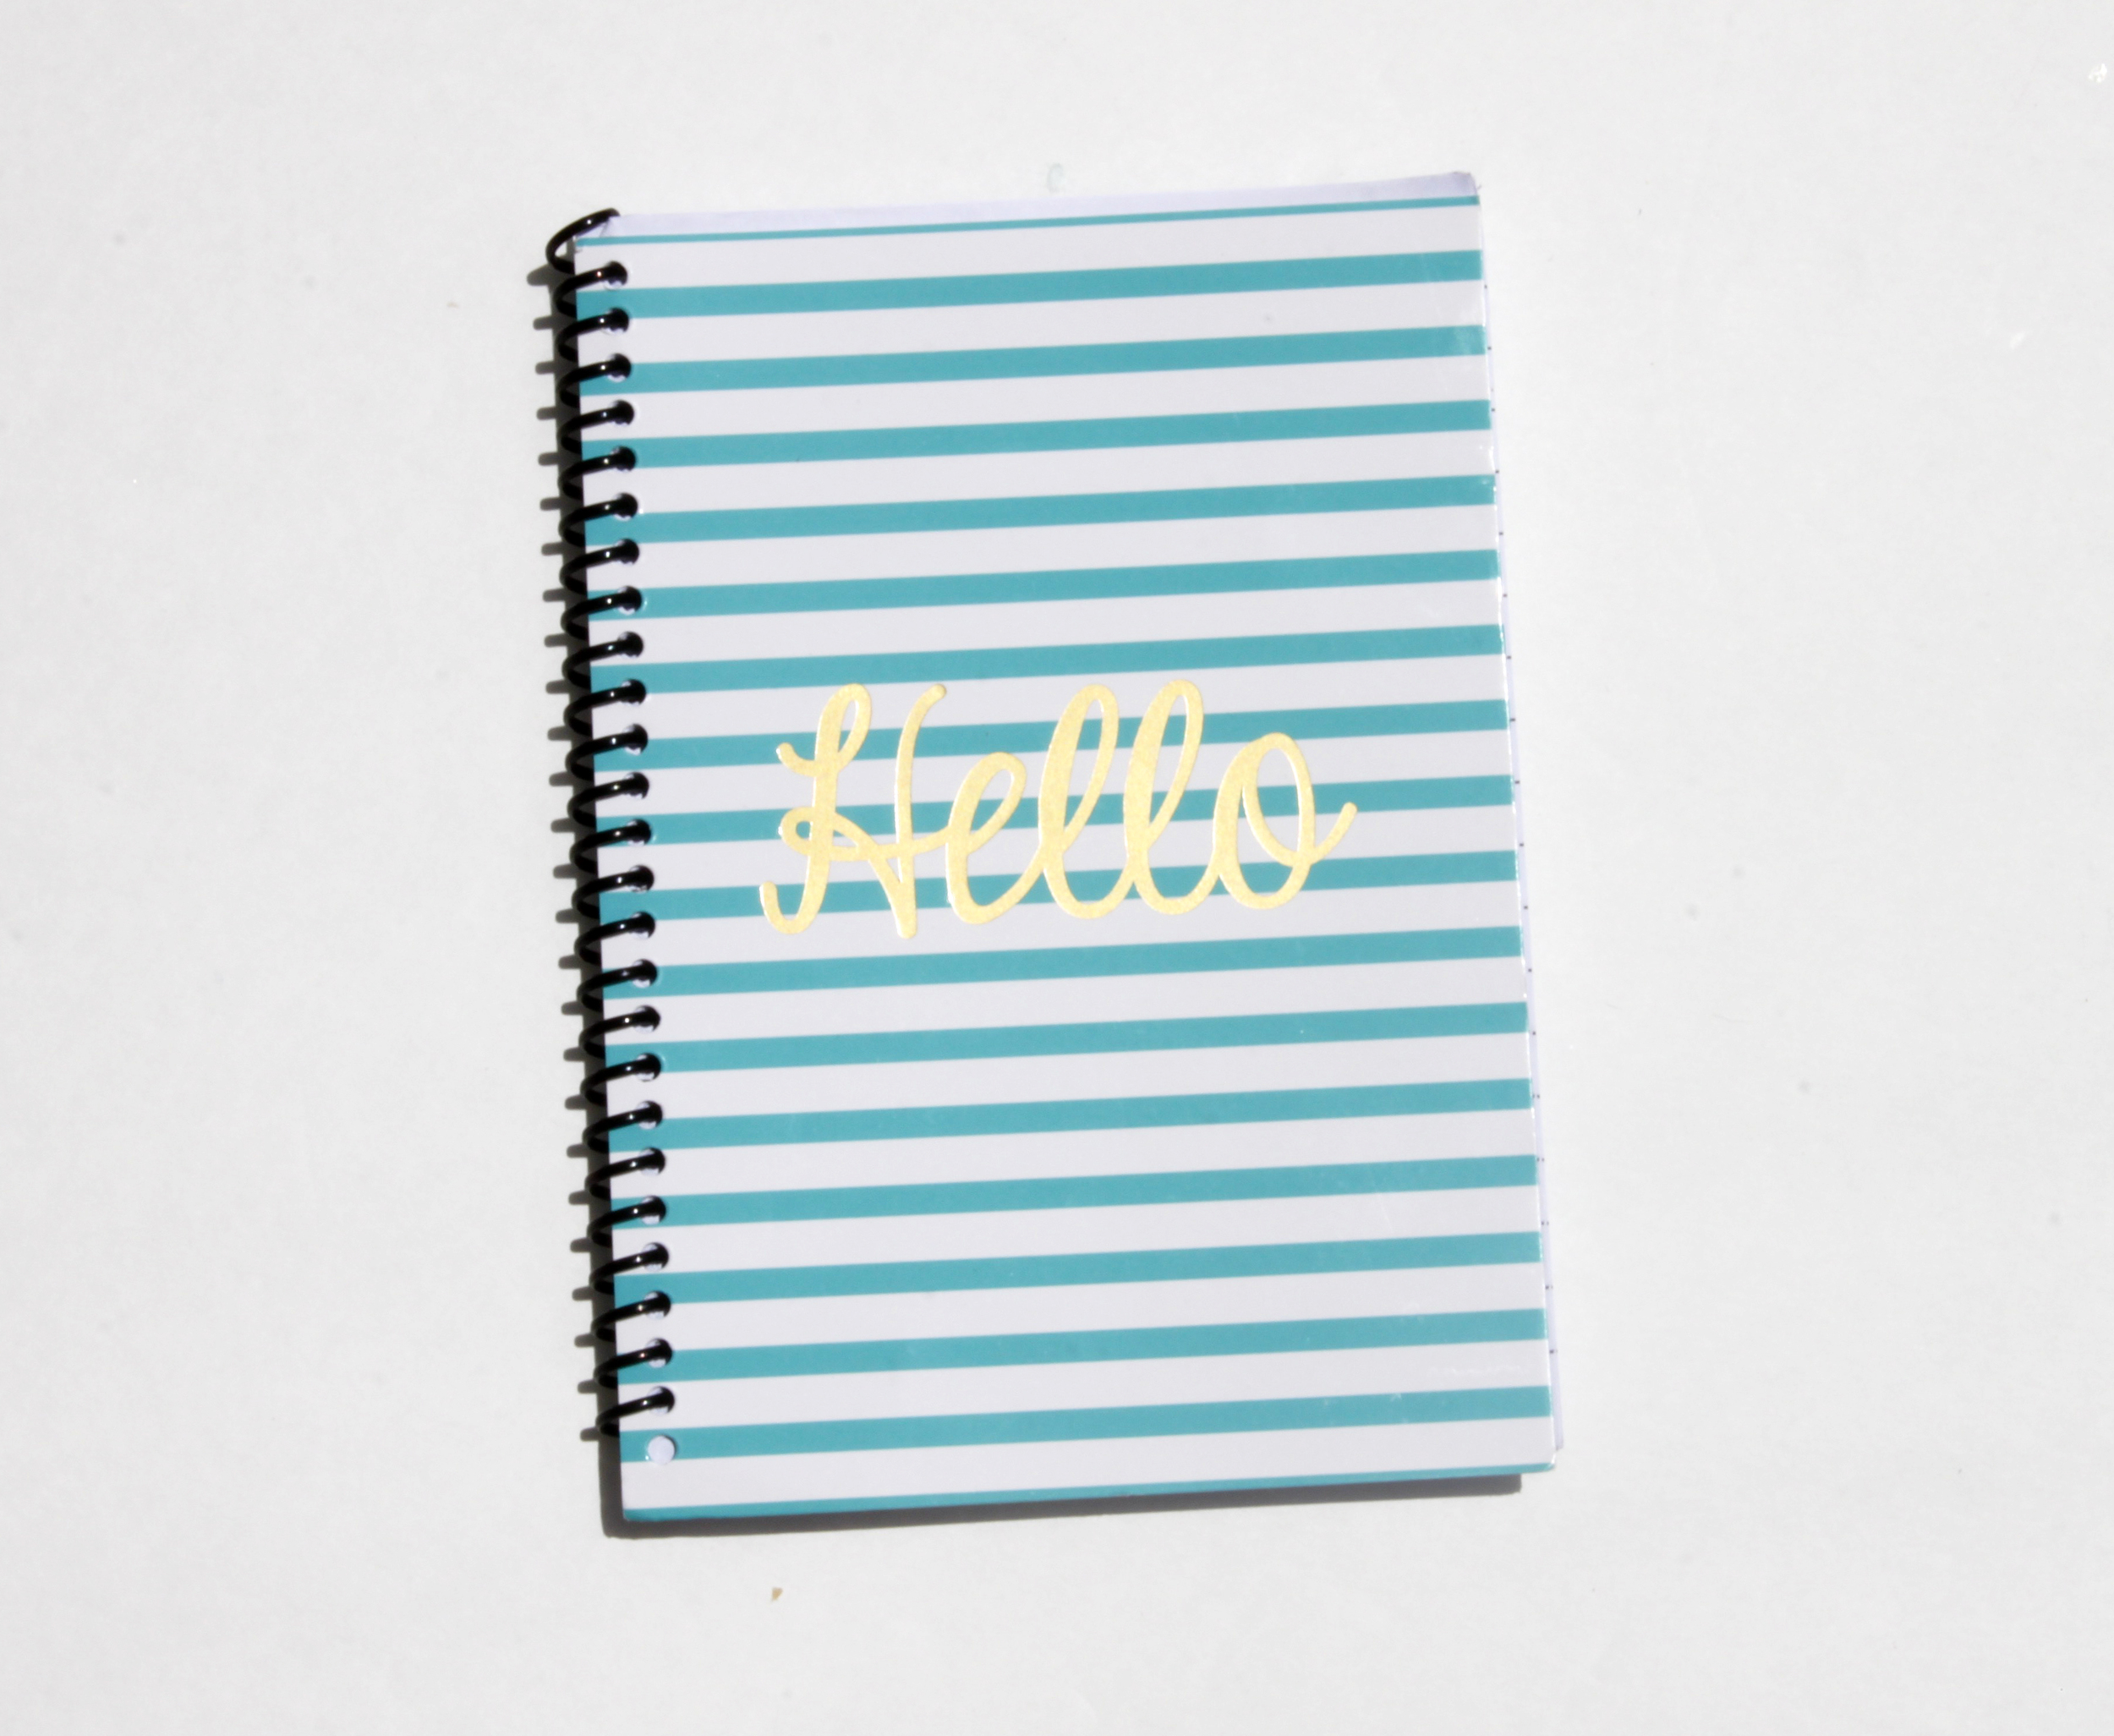 MY DAILY NOTEBOOK